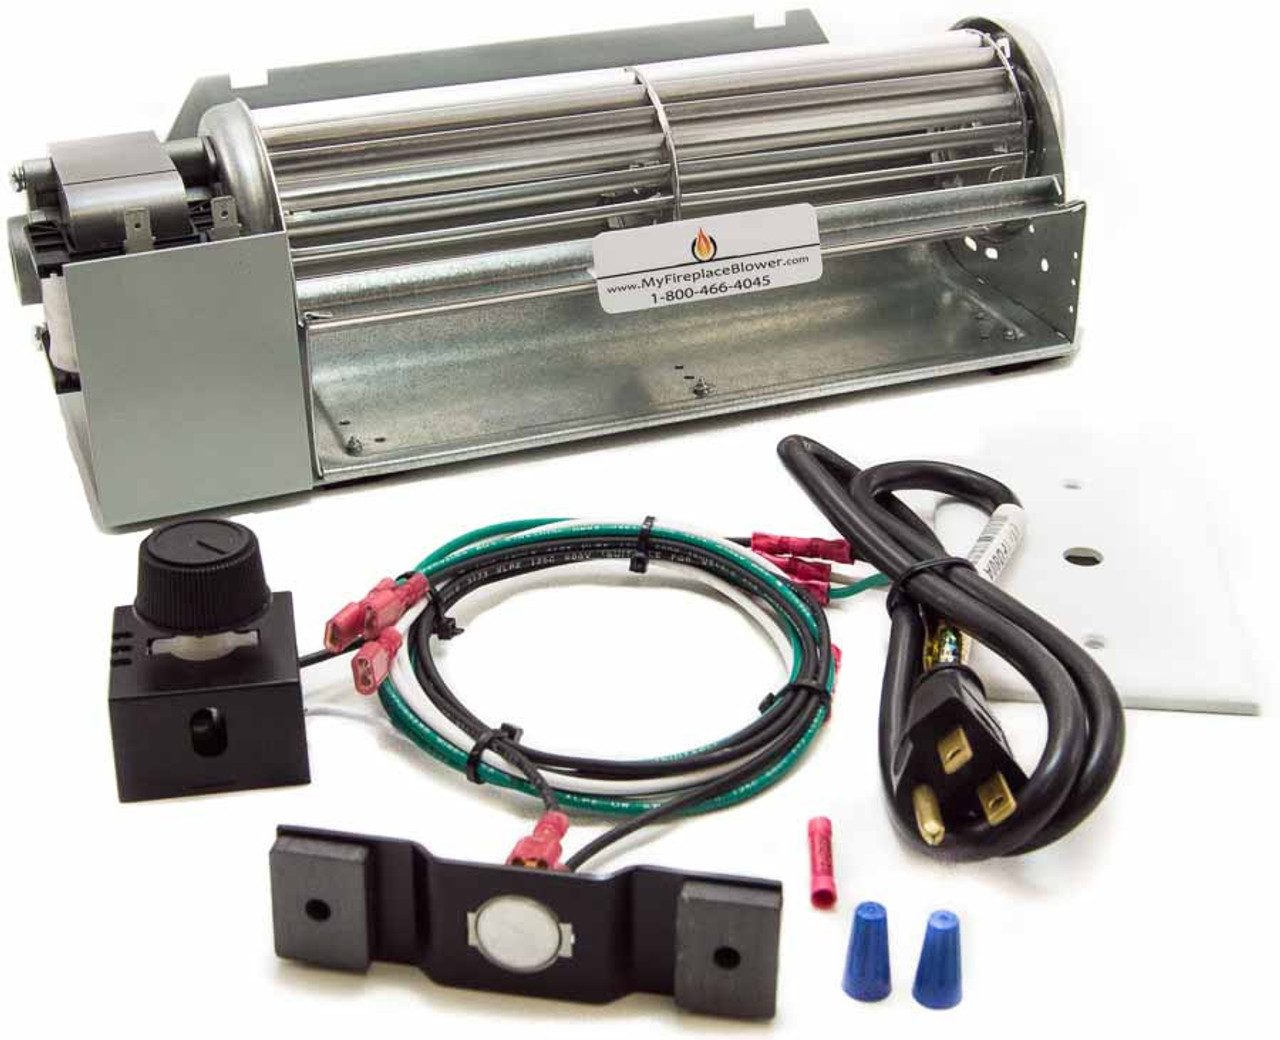 Superior_FBK 250_Fireplace Blower Kit_1__31092.1441325985?c=2?imbypass=on fbk 250 blower kit superior fireplace blower fan kit dr 500cmn